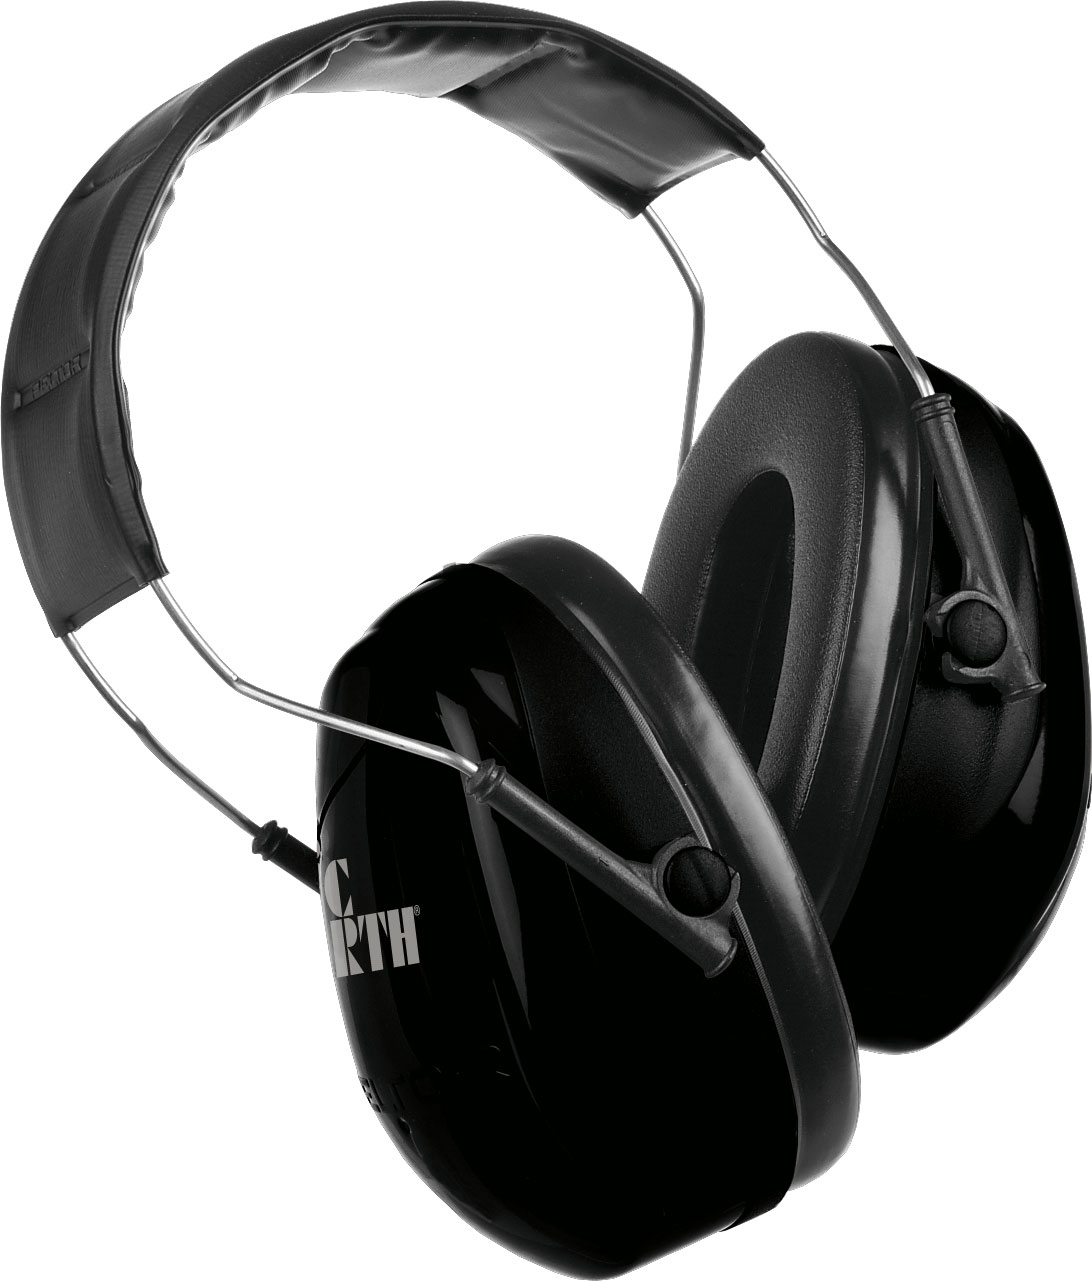 vic firth db22 isolation headphones just drums. Black Bedroom Furniture Sets. Home Design Ideas